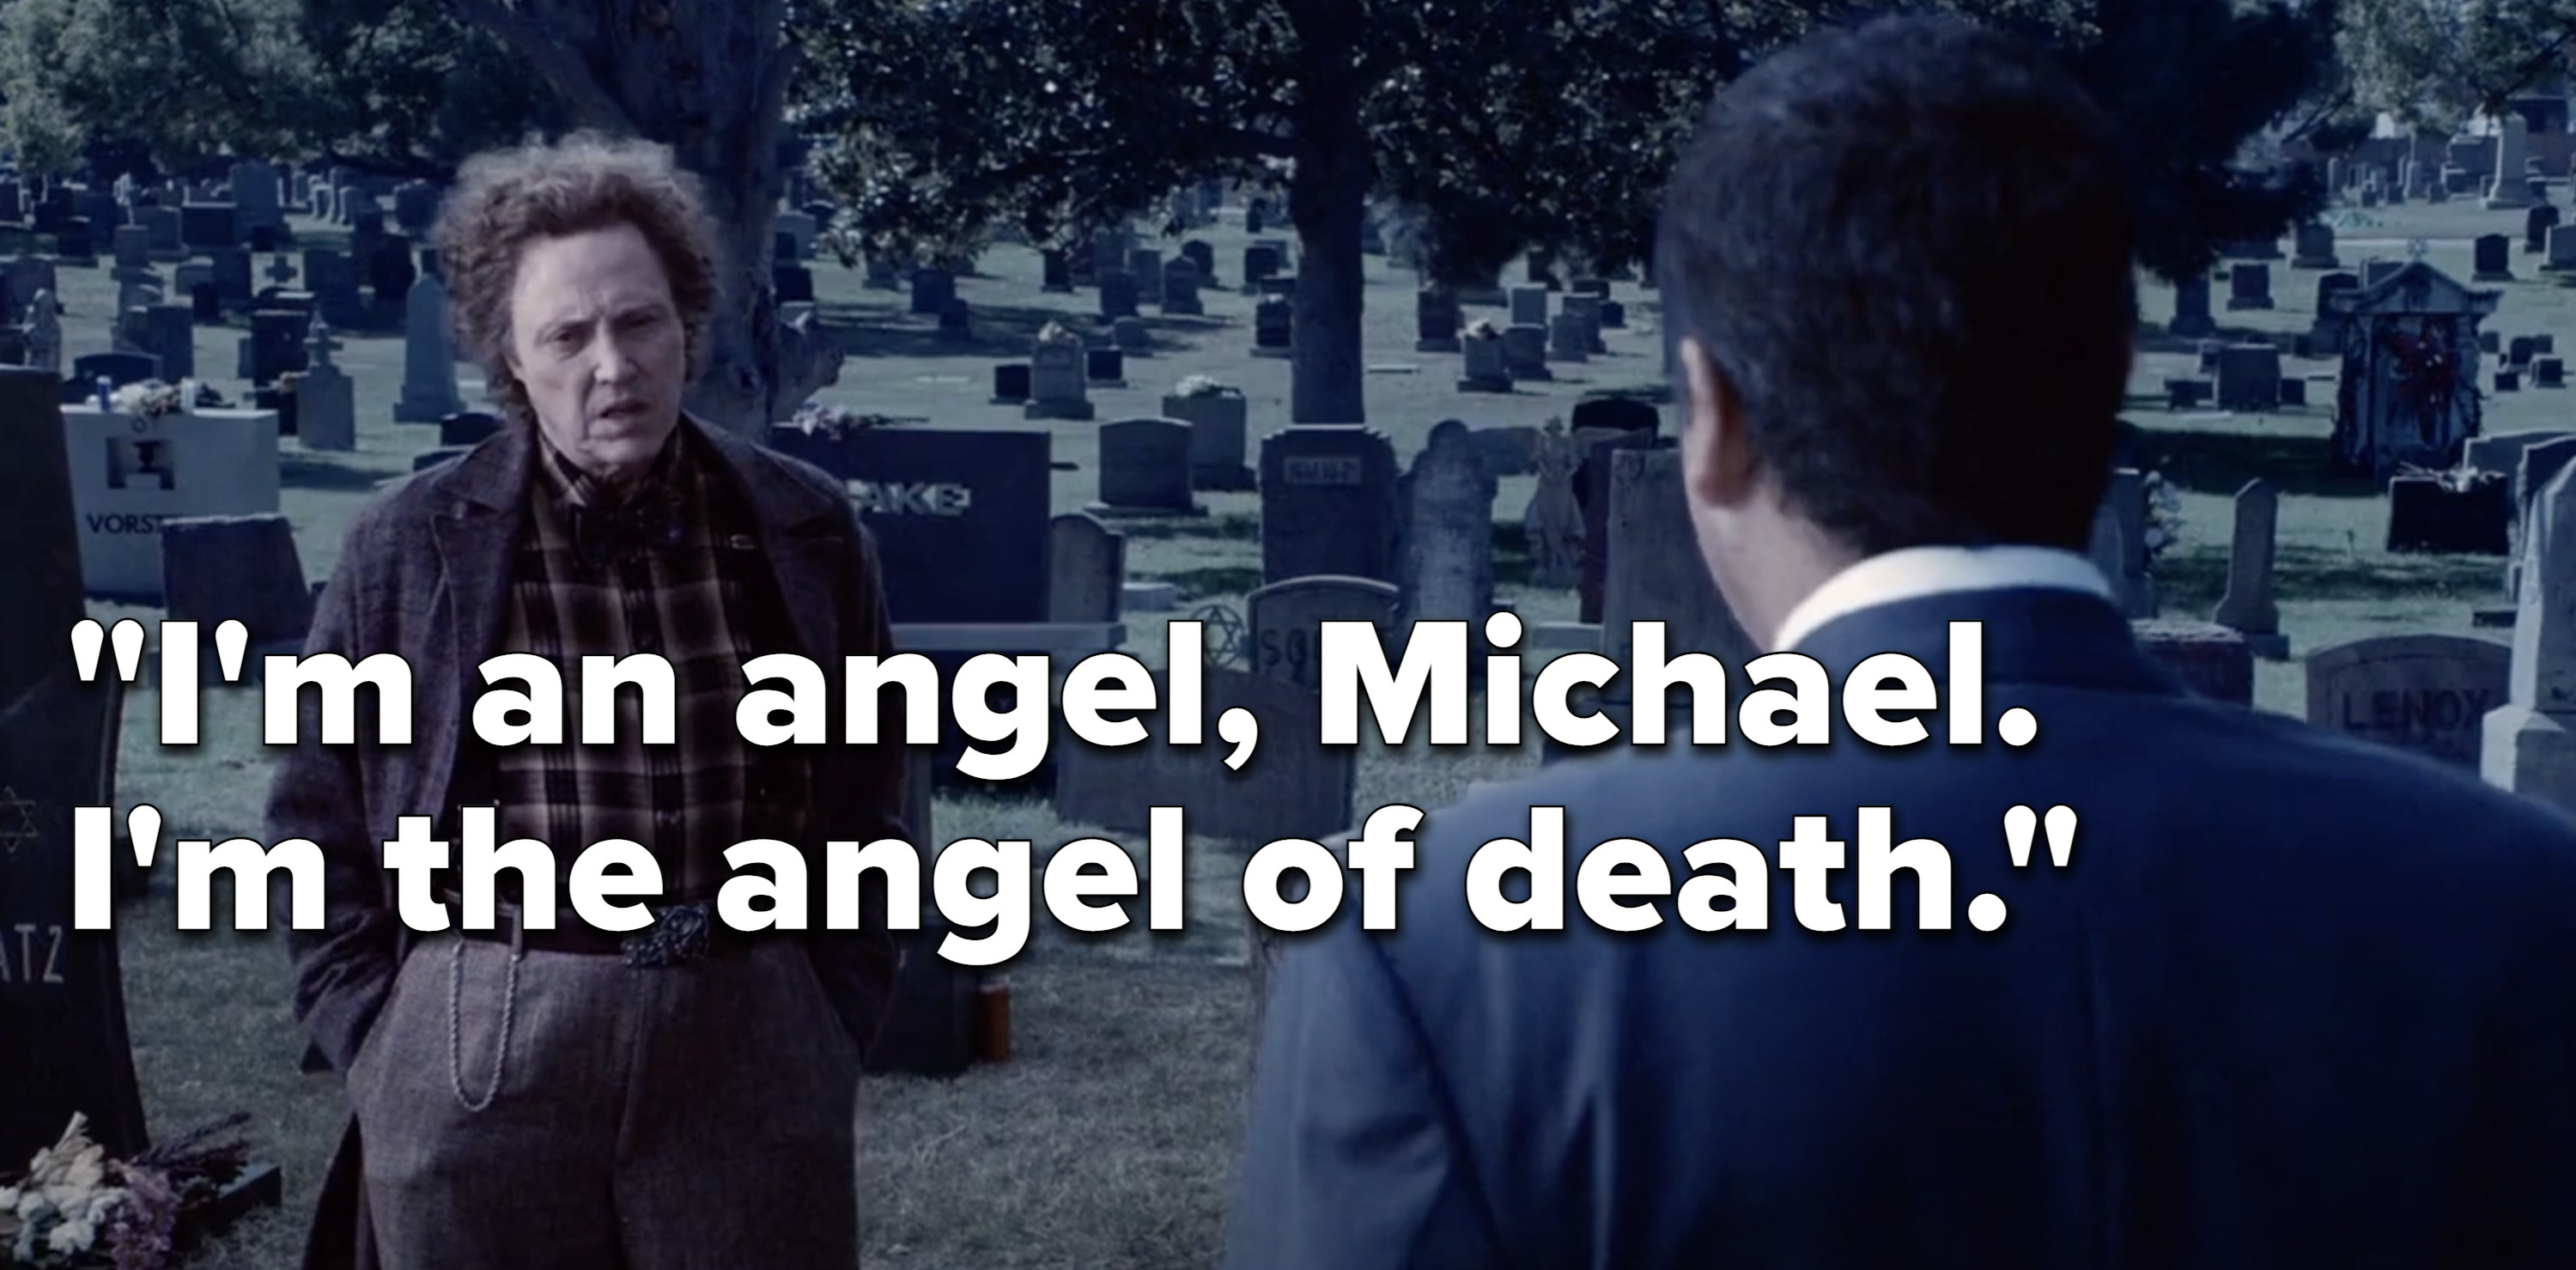 Morty telling Michael that he is the angel of death